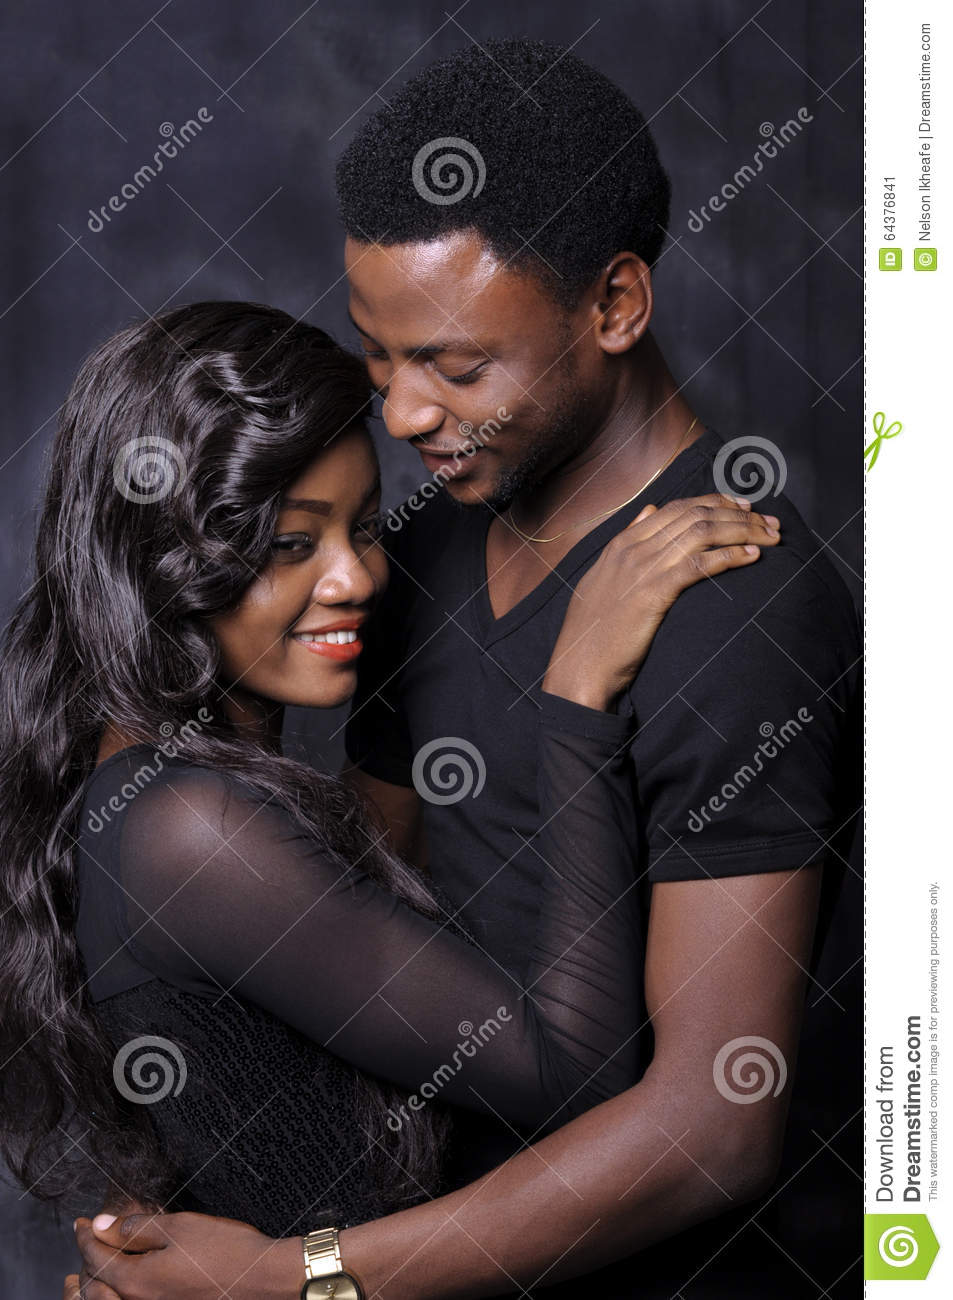 Free online dating sites for african americans